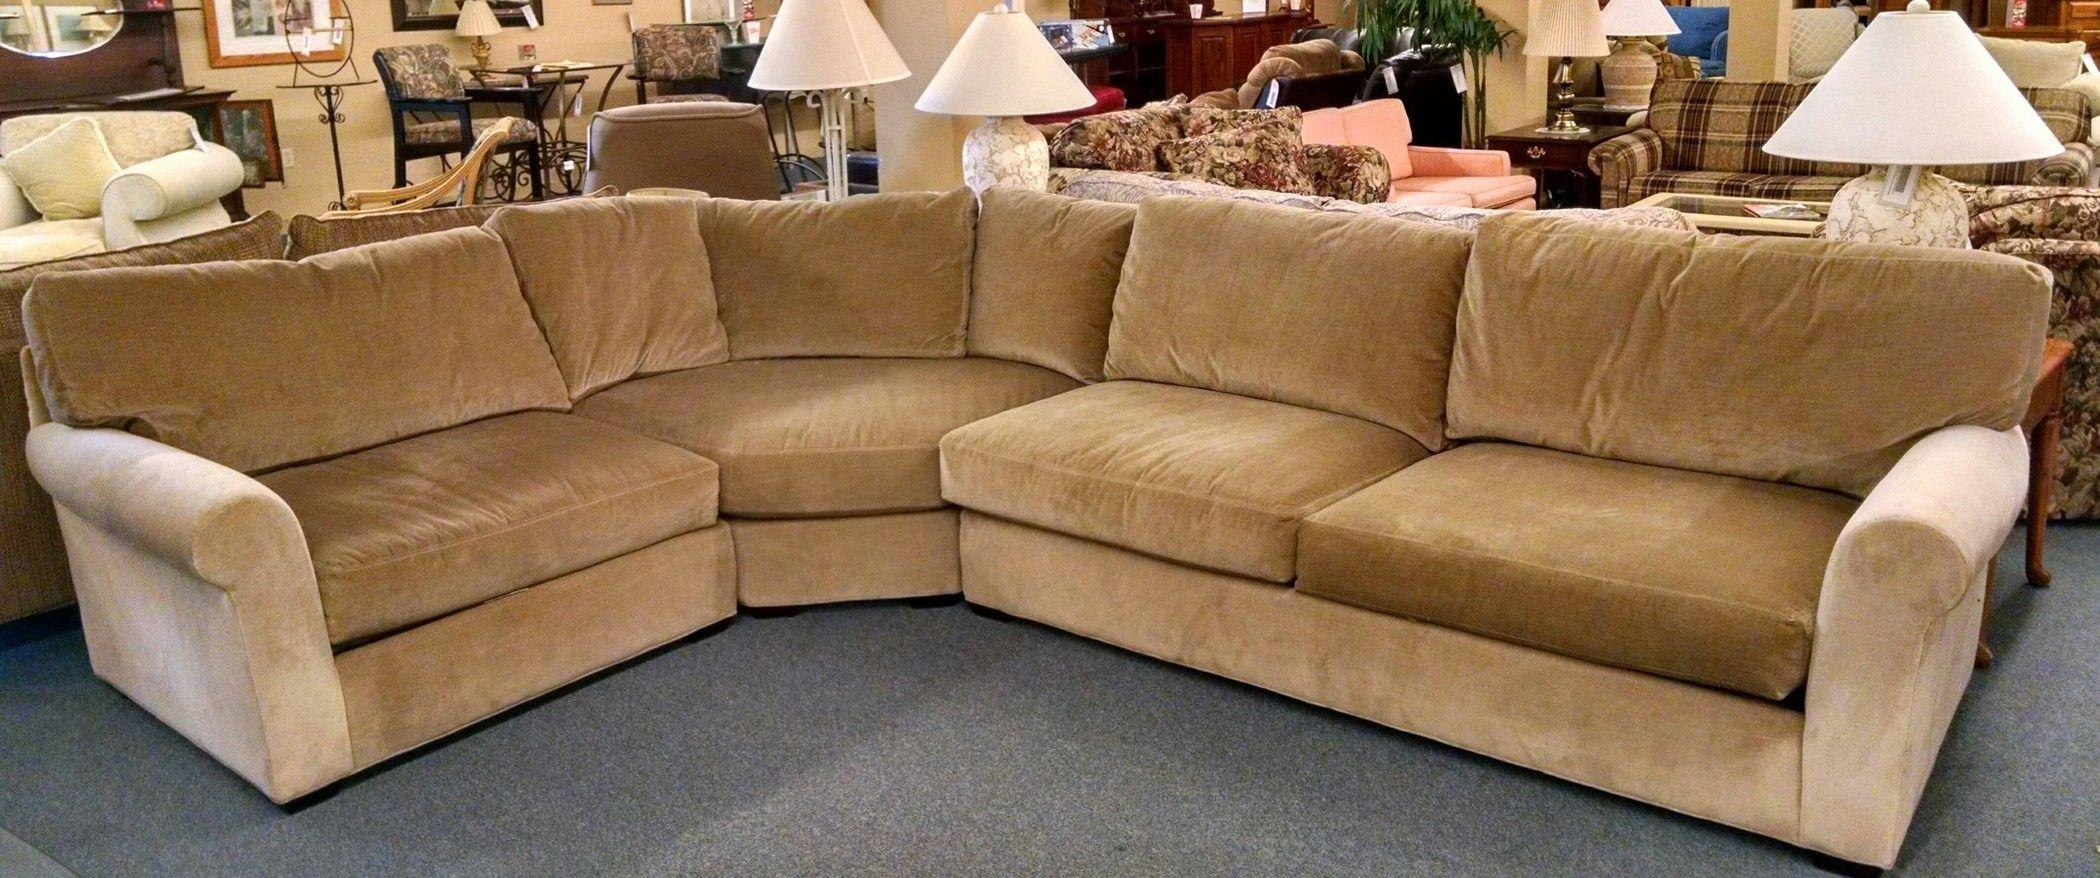 20 Ideas Of Lee Industries Sectional Sofa : lee sectional - Sectionals, Sofas & Couches